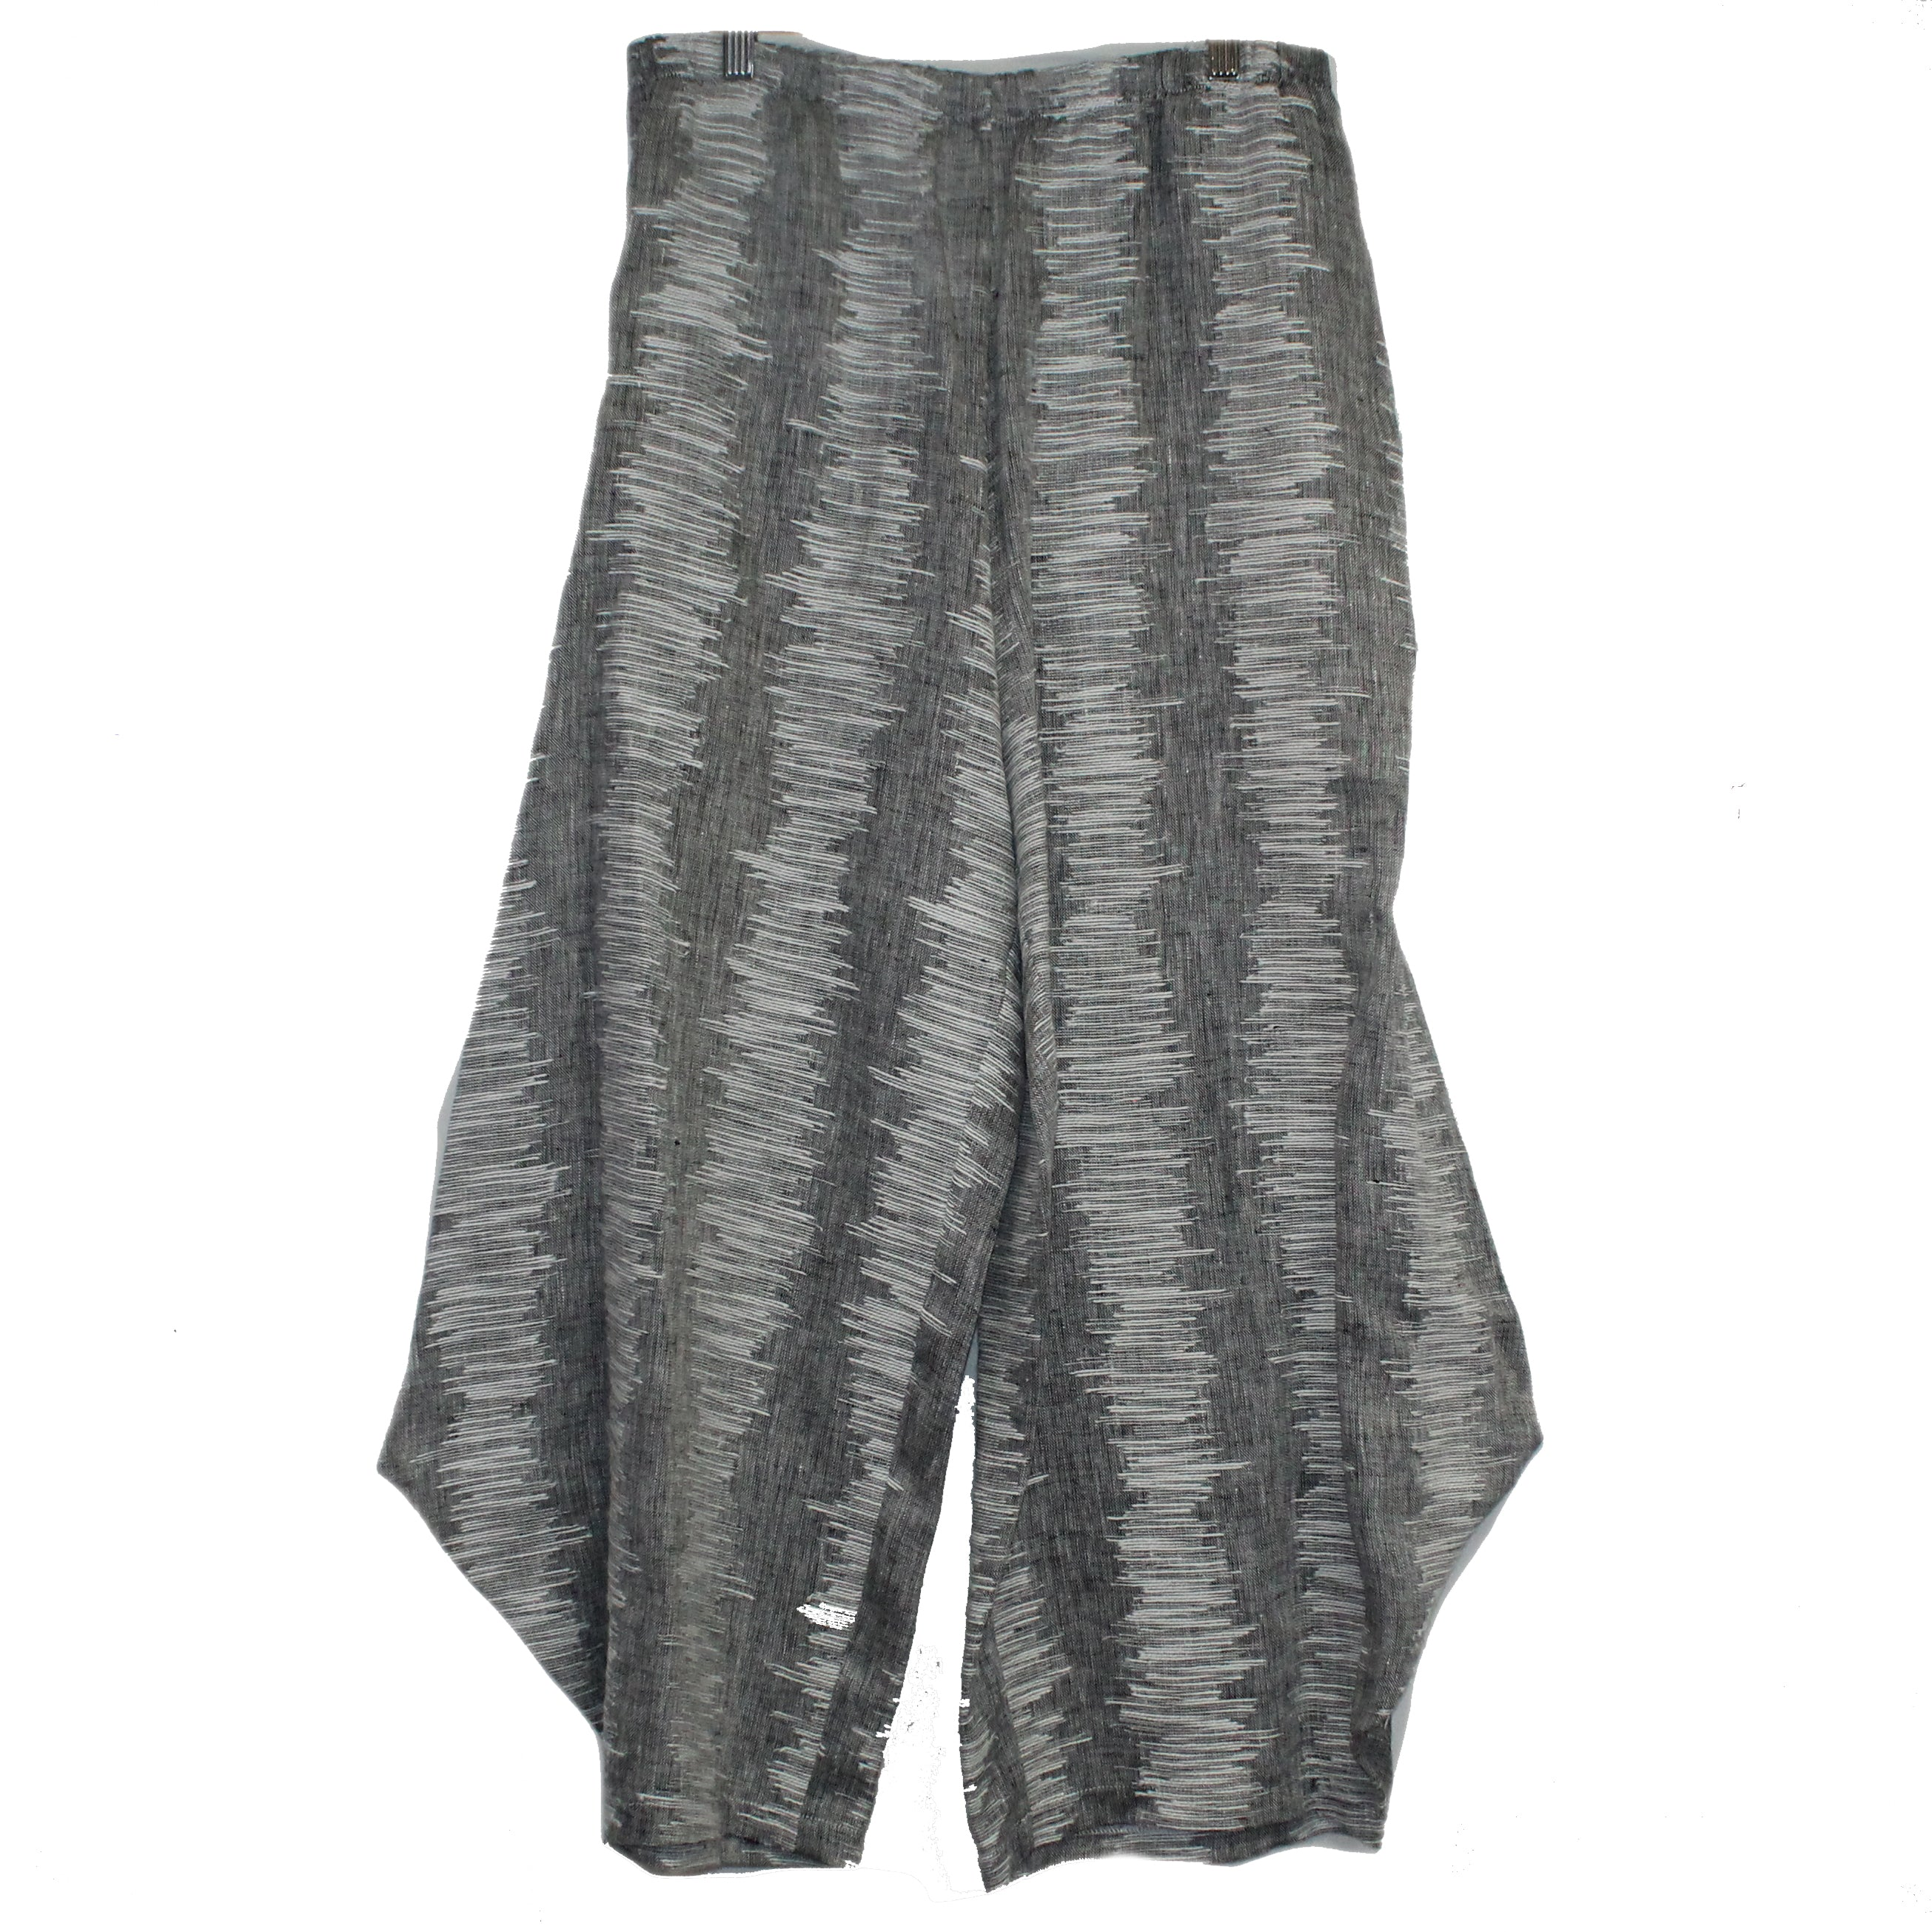 M Square Pant, Out There, Grey/White Sizes L/XL